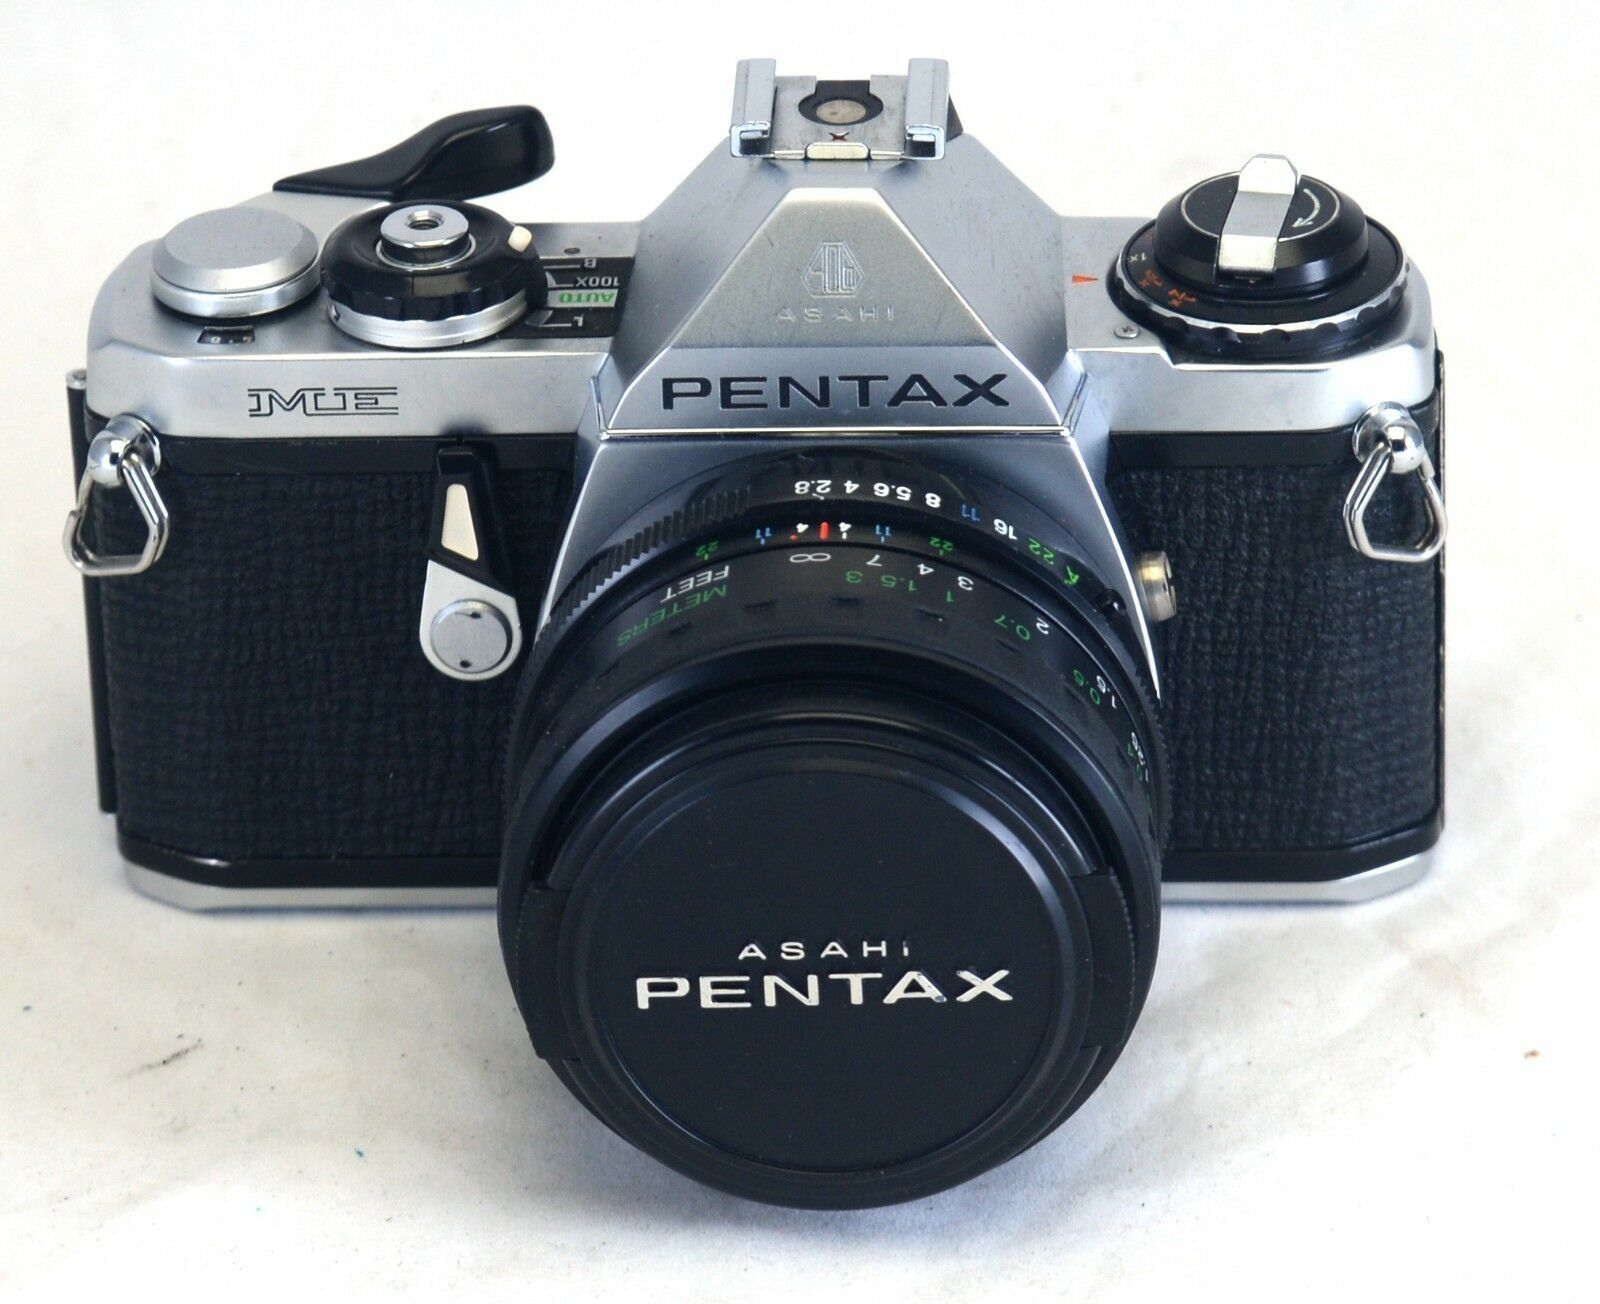 ASAHI PENTAX ME Vintage 35mm FILM Camera Vivitar 28mm f/2.8 Wide Angle MC Lens